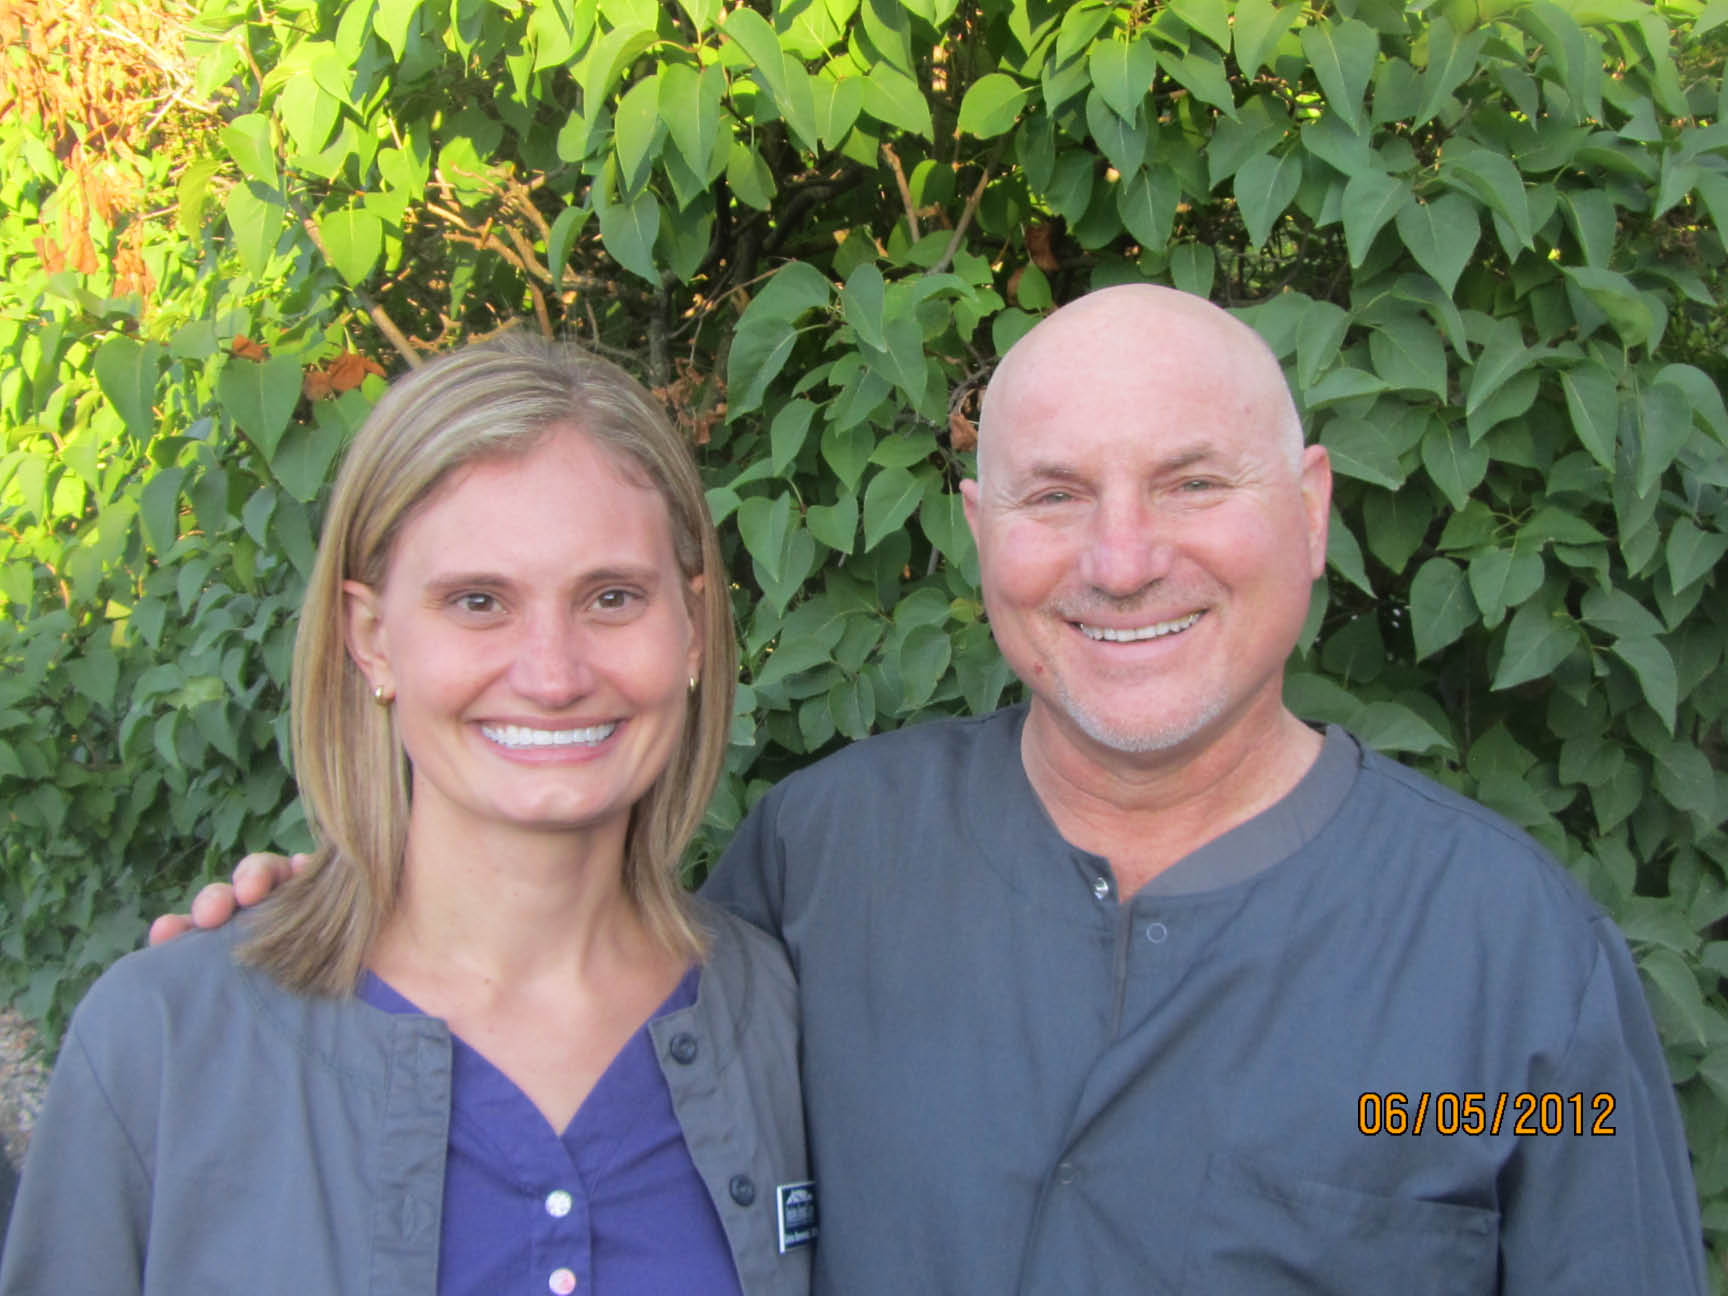 dentists at Meadows Dental Care near Chicago, IL; teeth whitening; orthodontist